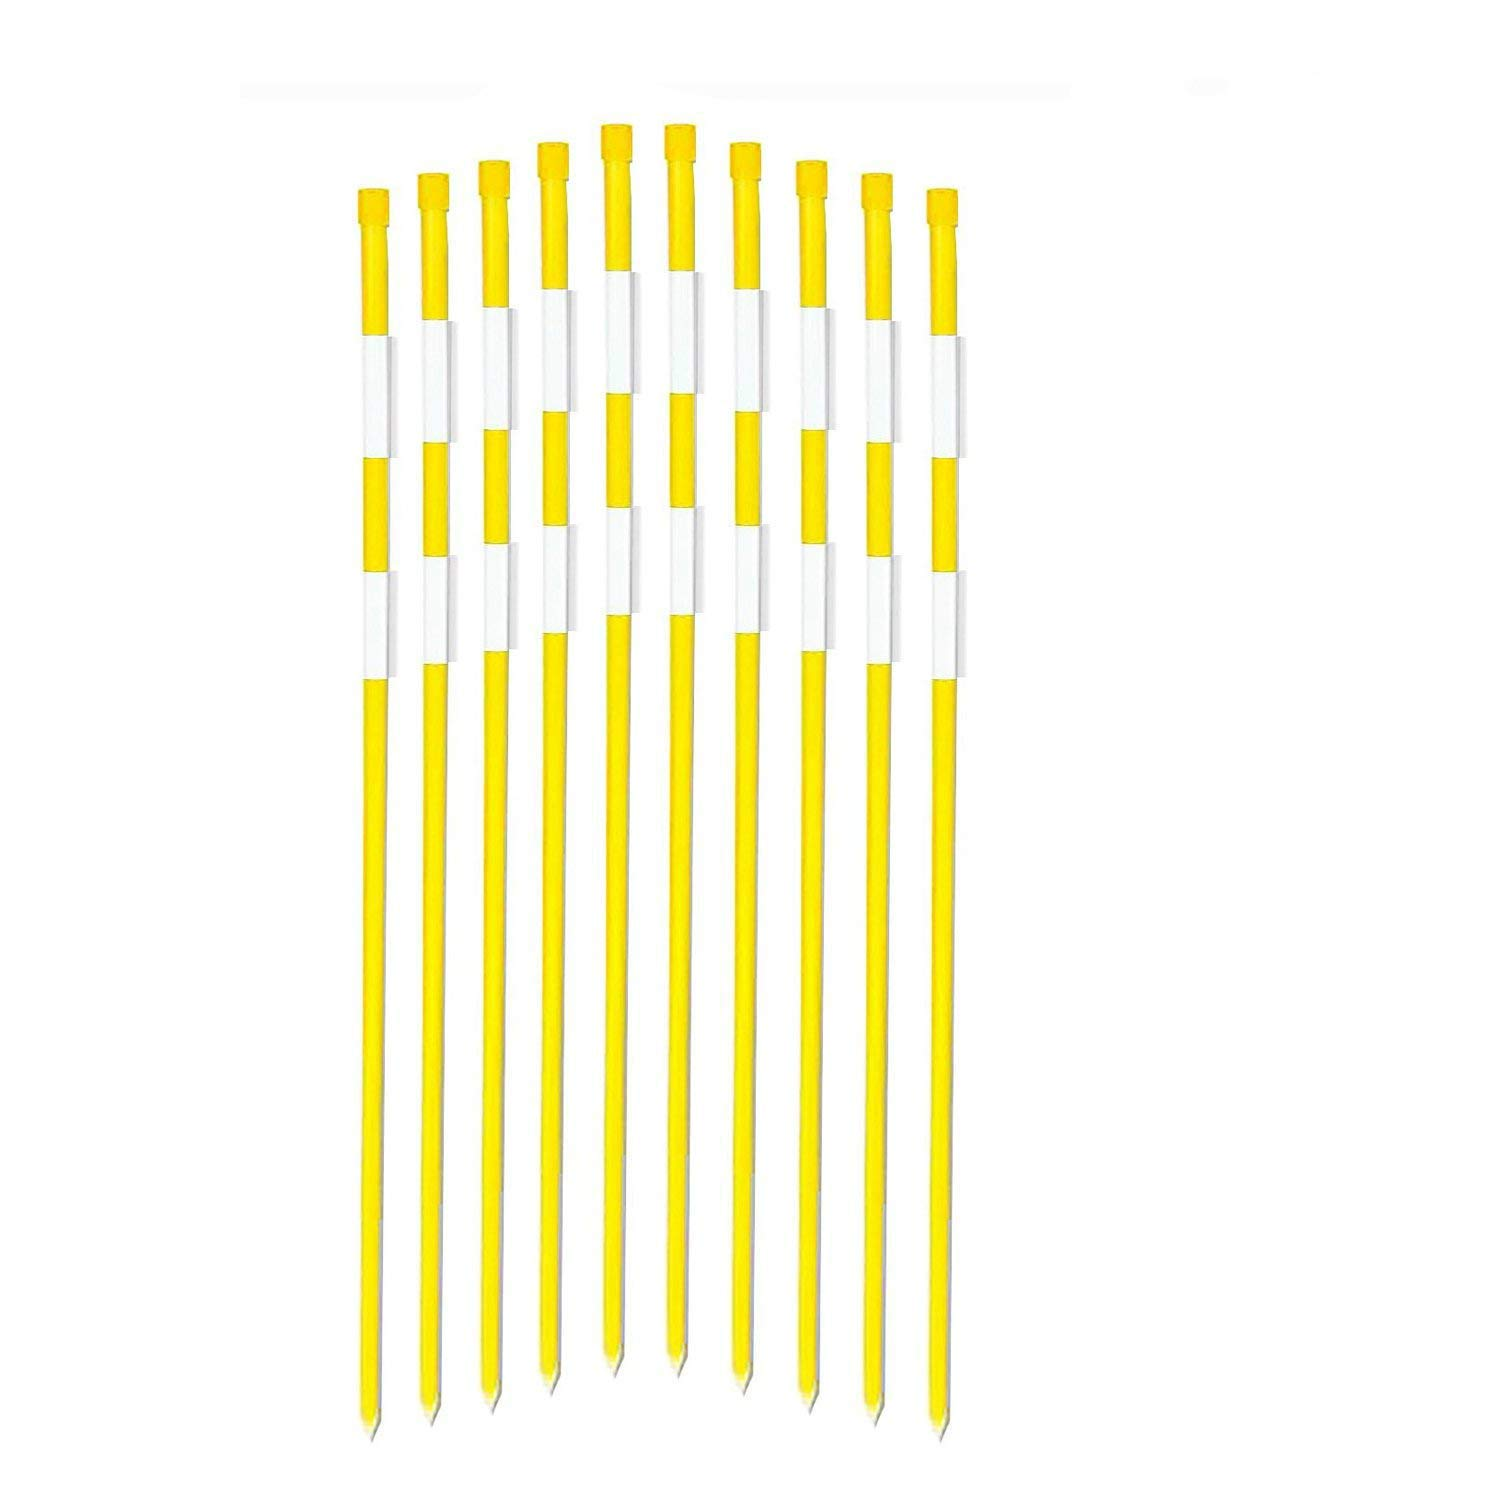 FiberMarker 48-Inch Reflective Driveway Markers Driveway Poles for Easy Visibility at Night 5/16 Inch Diameter Yellow,20pack by FiberMarker